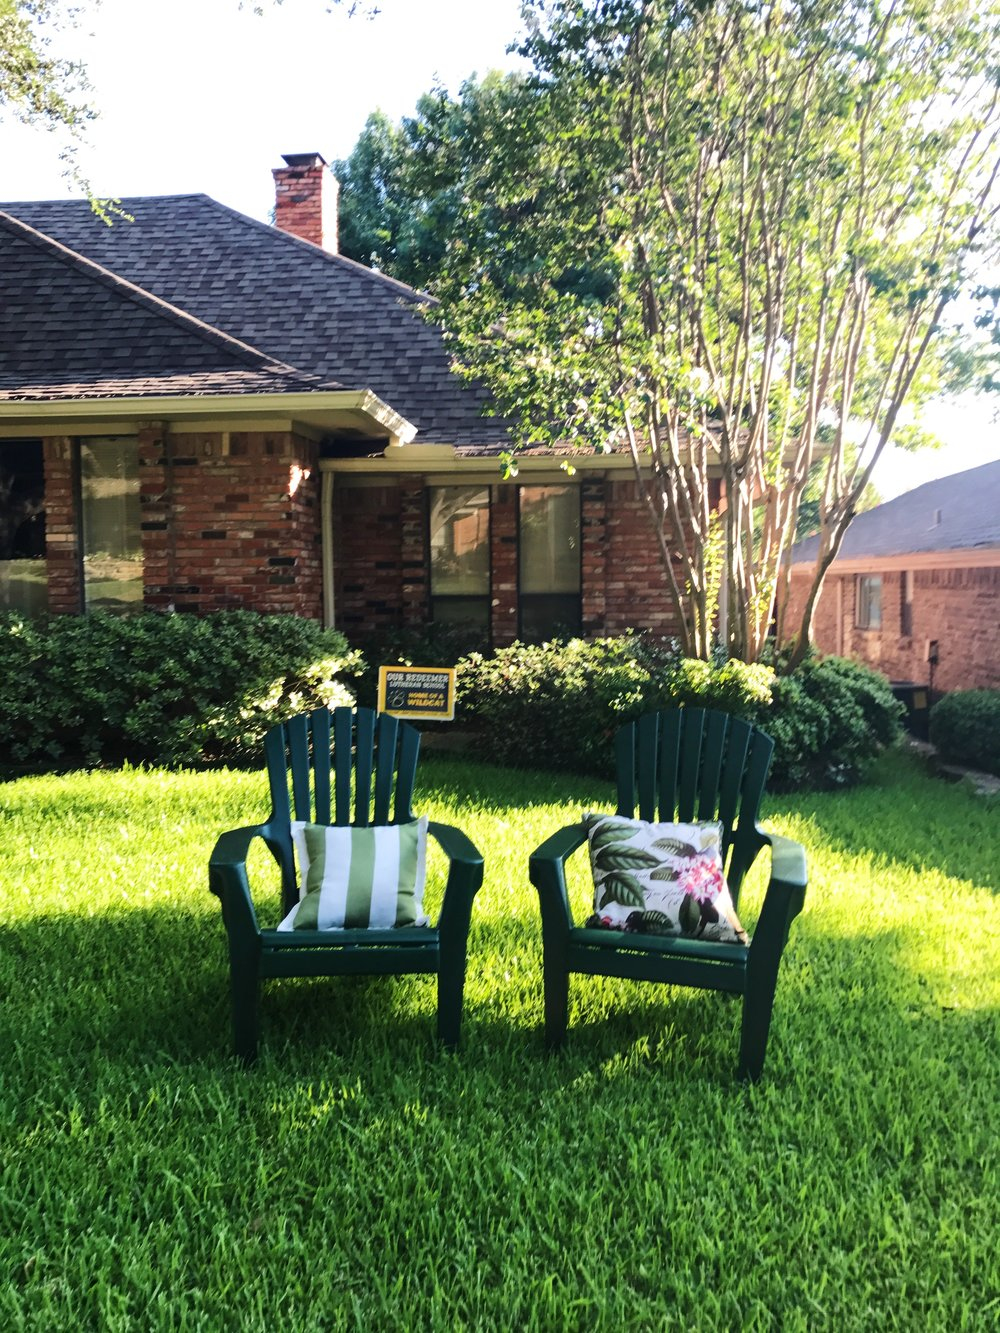 Gotta love the front lawn chairs, a trend I first saw in Dallas.